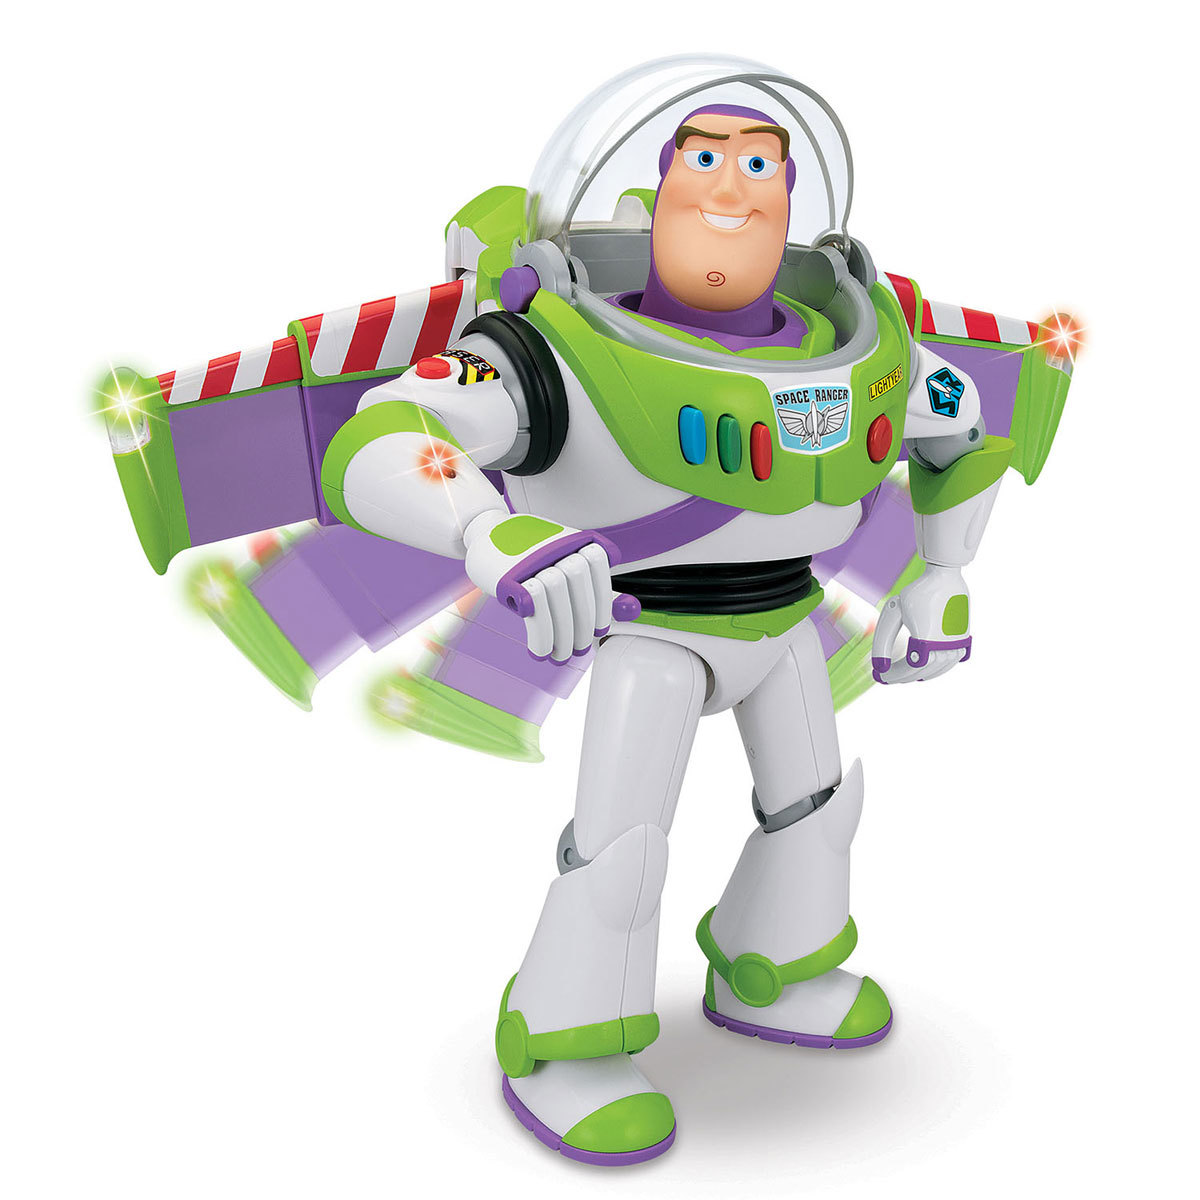 Disney Pixar Toy Story 4 Talking Figure - Buzz Lightyear Space Ranger from Early Learning Center